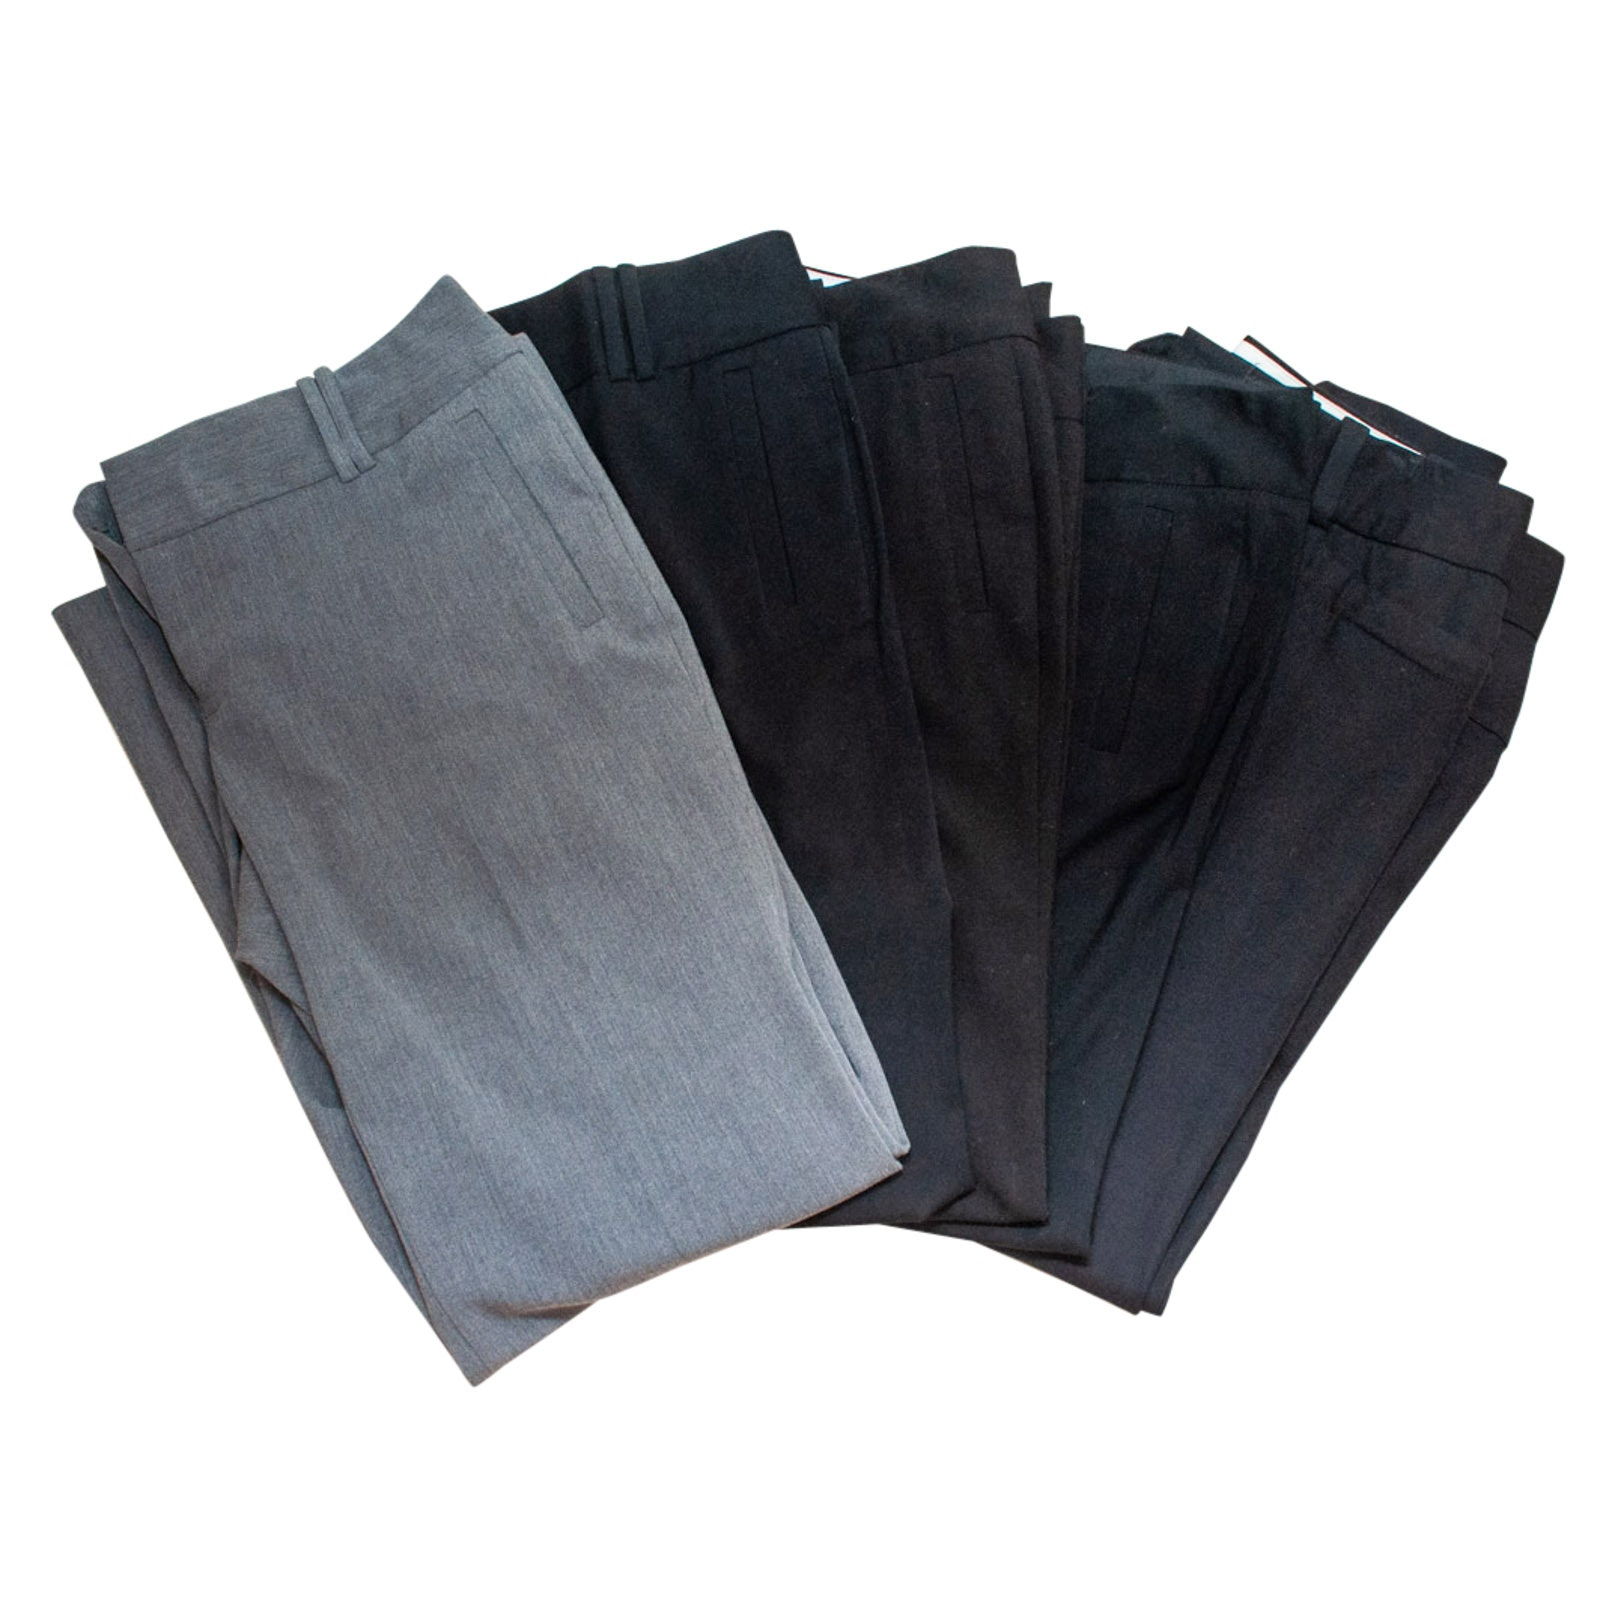 Women's Calvin Klein Pants in Black and Gray